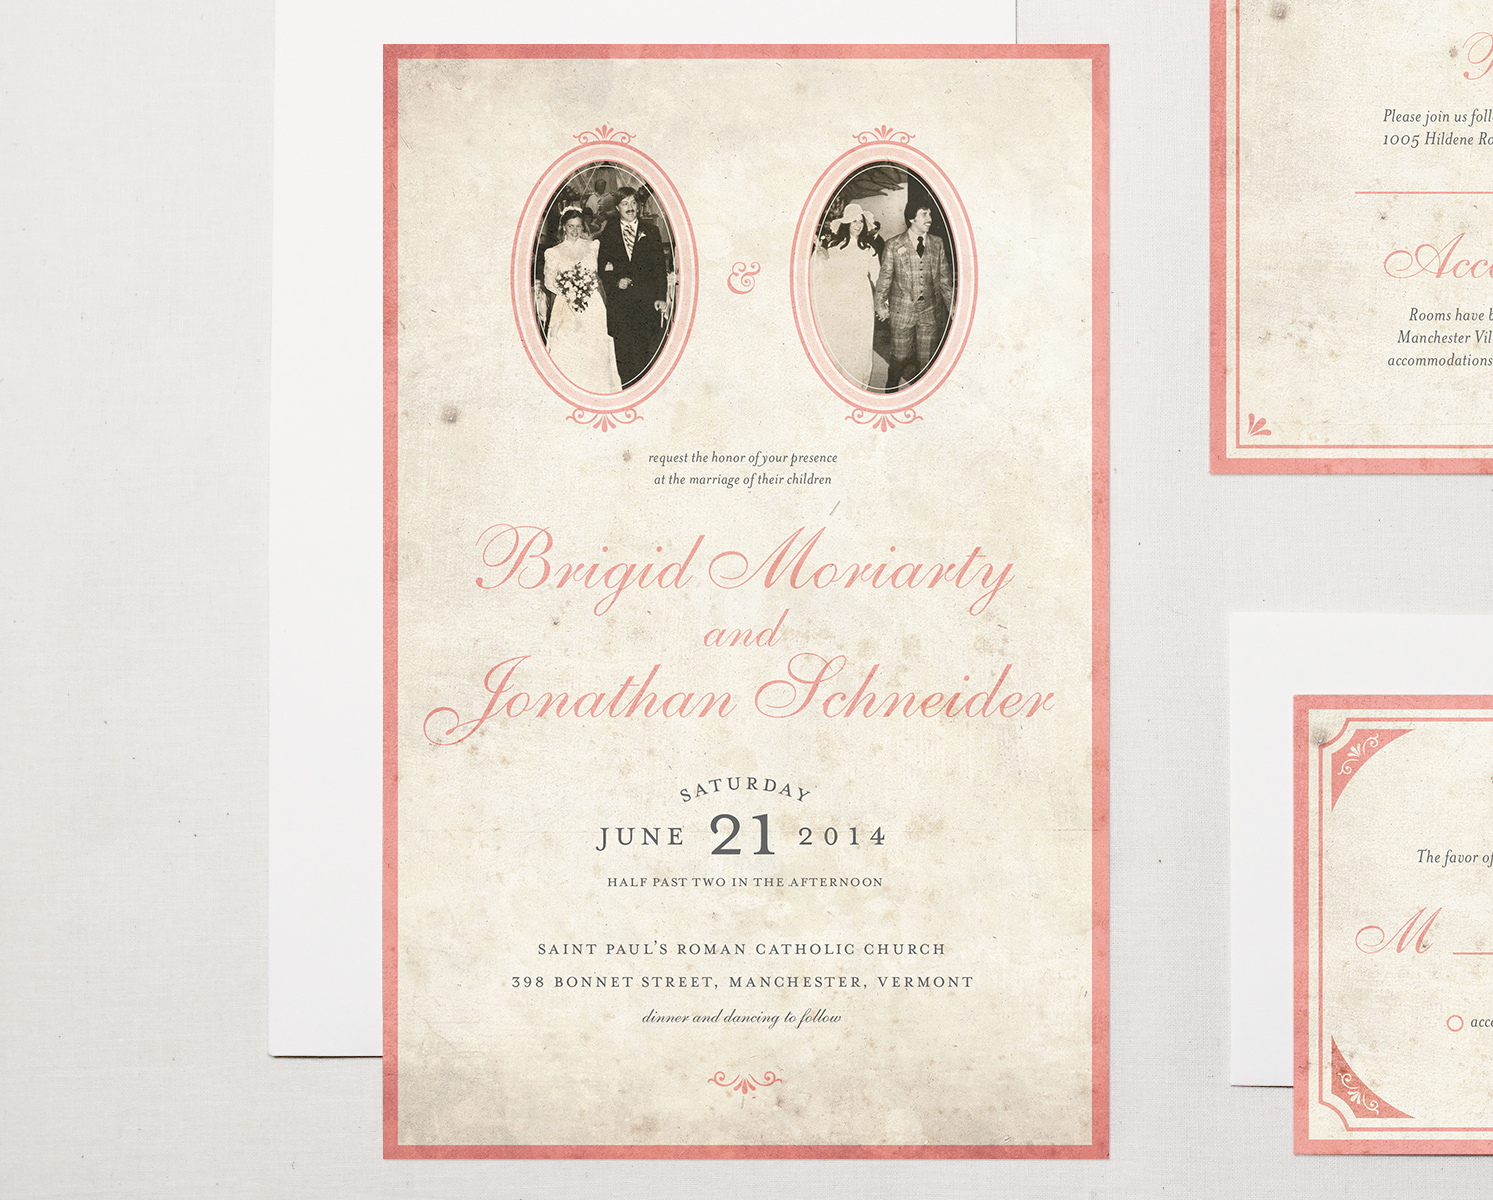 Letter19Design Vintage Photo Wedding Invitation Front